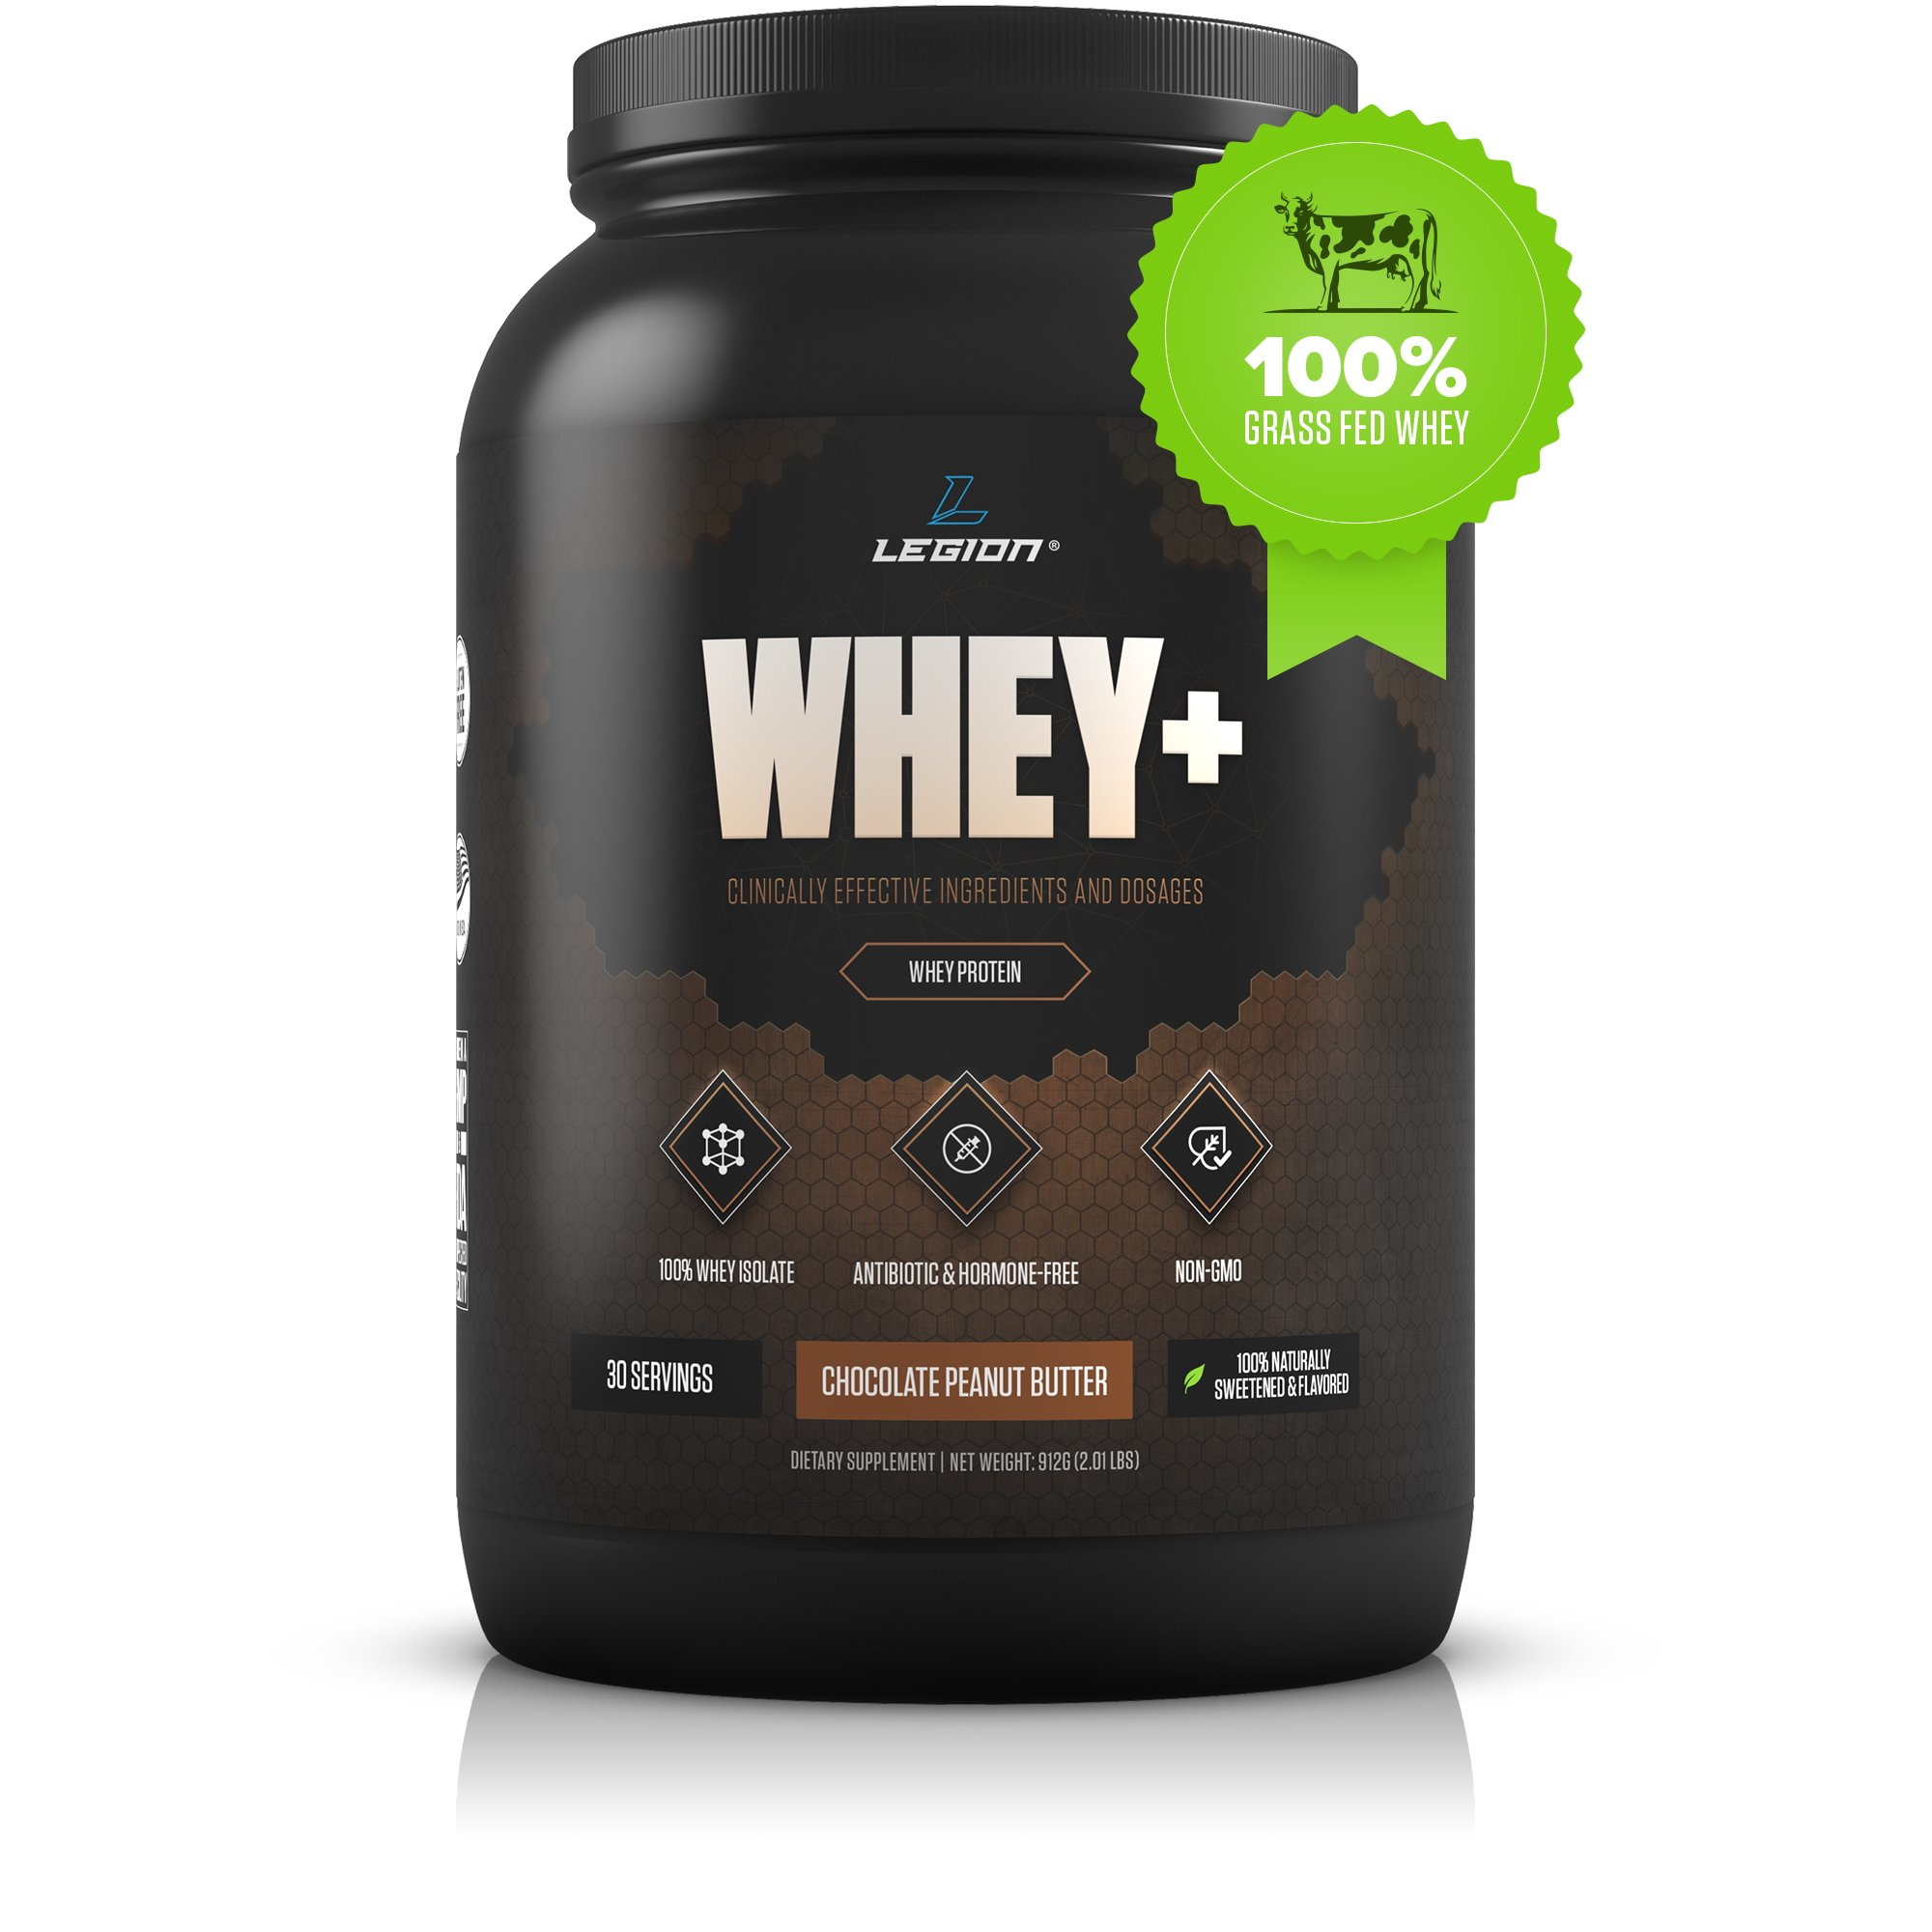 Legion Whey+ Whey Isolate Protein Powder from Grass Fed Cows - Low Carb, Low Calorie, Non-GMO, Lactose Free, Gluten Free, Sugar Free. Great for Weight Loss (Chocolate Peanut Butter, 30 Servings) by LEGION